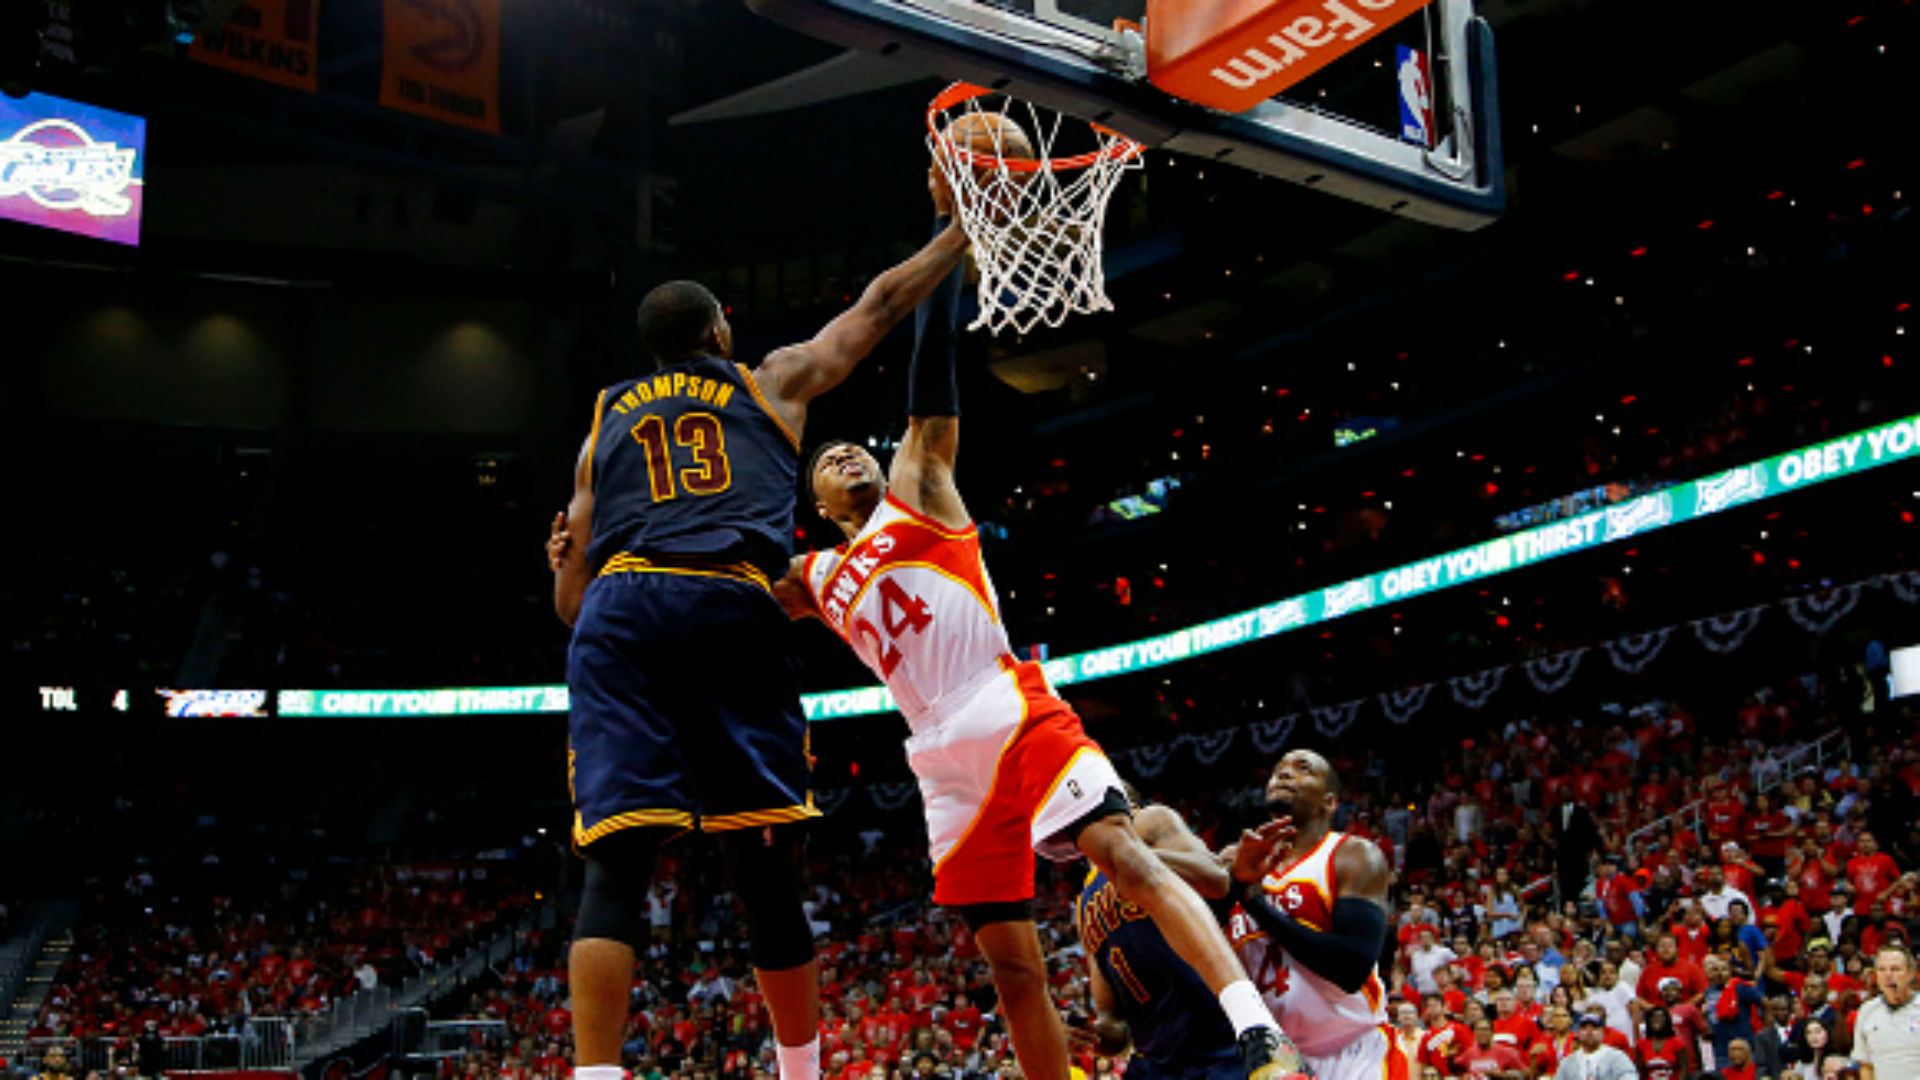 Tristan Thompson's block on Kent Bazemore personifies Cavs' win over Hawks